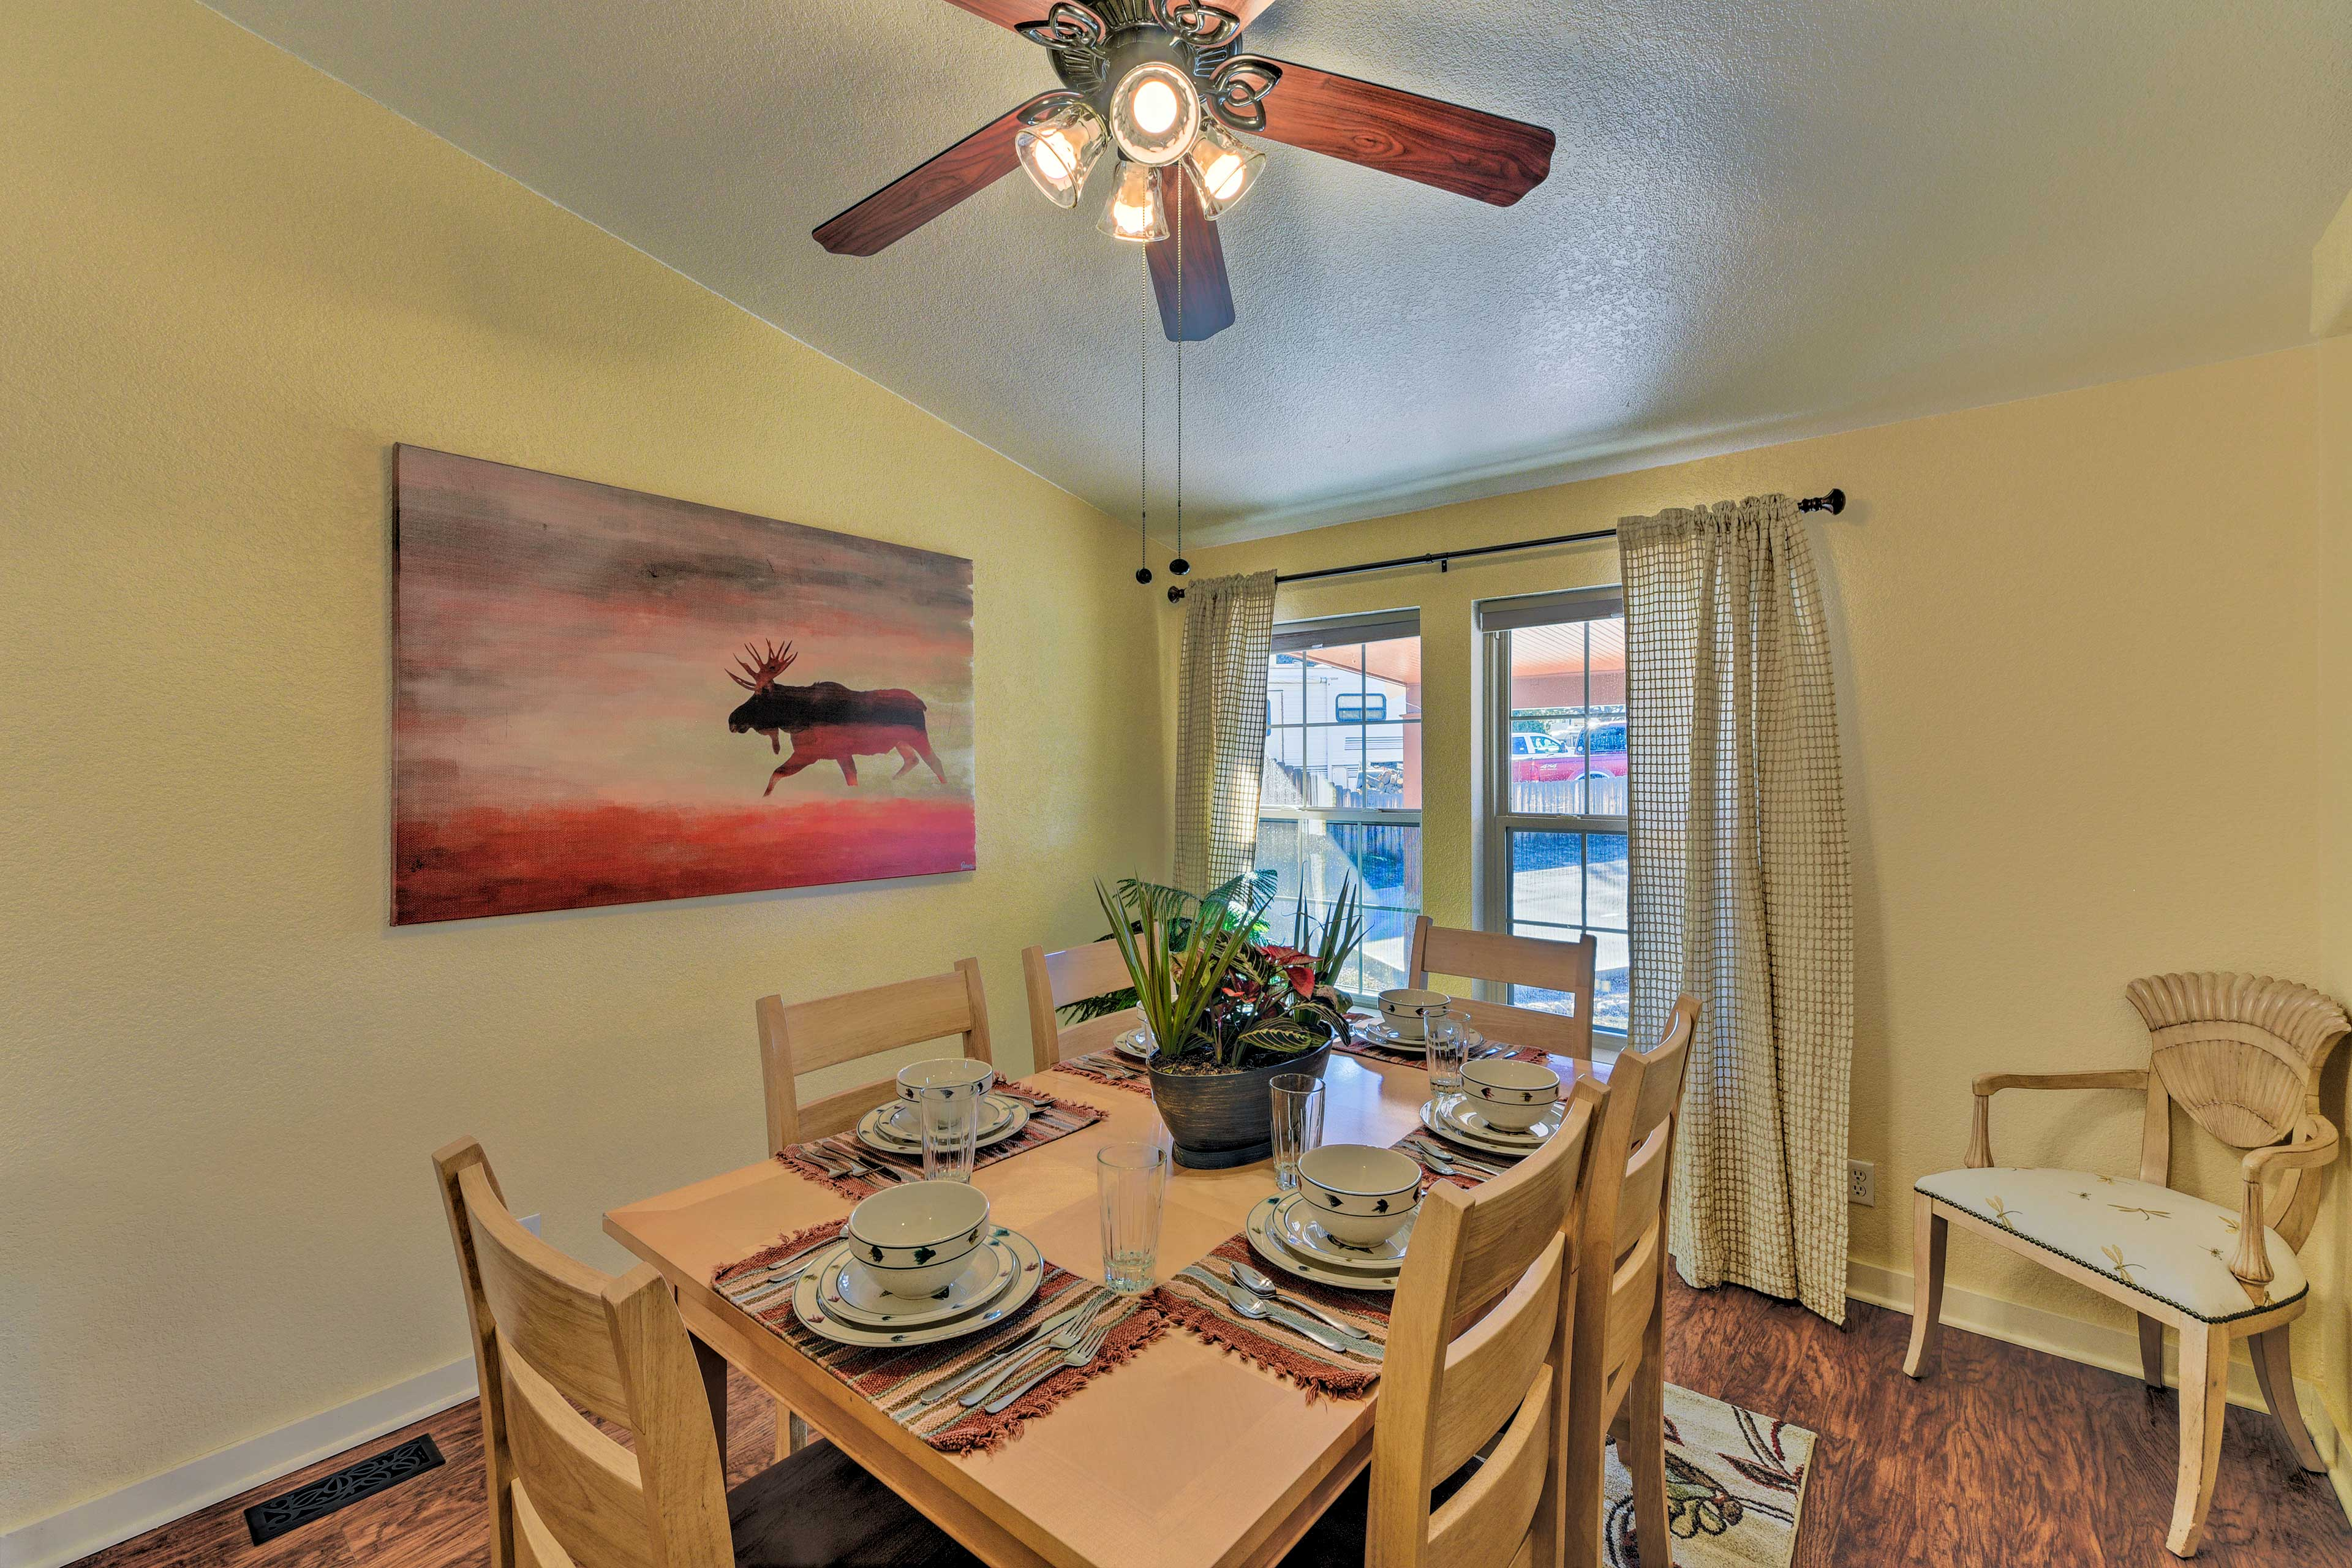 Enjoy tasty homemade meals at this 6-person dining table.